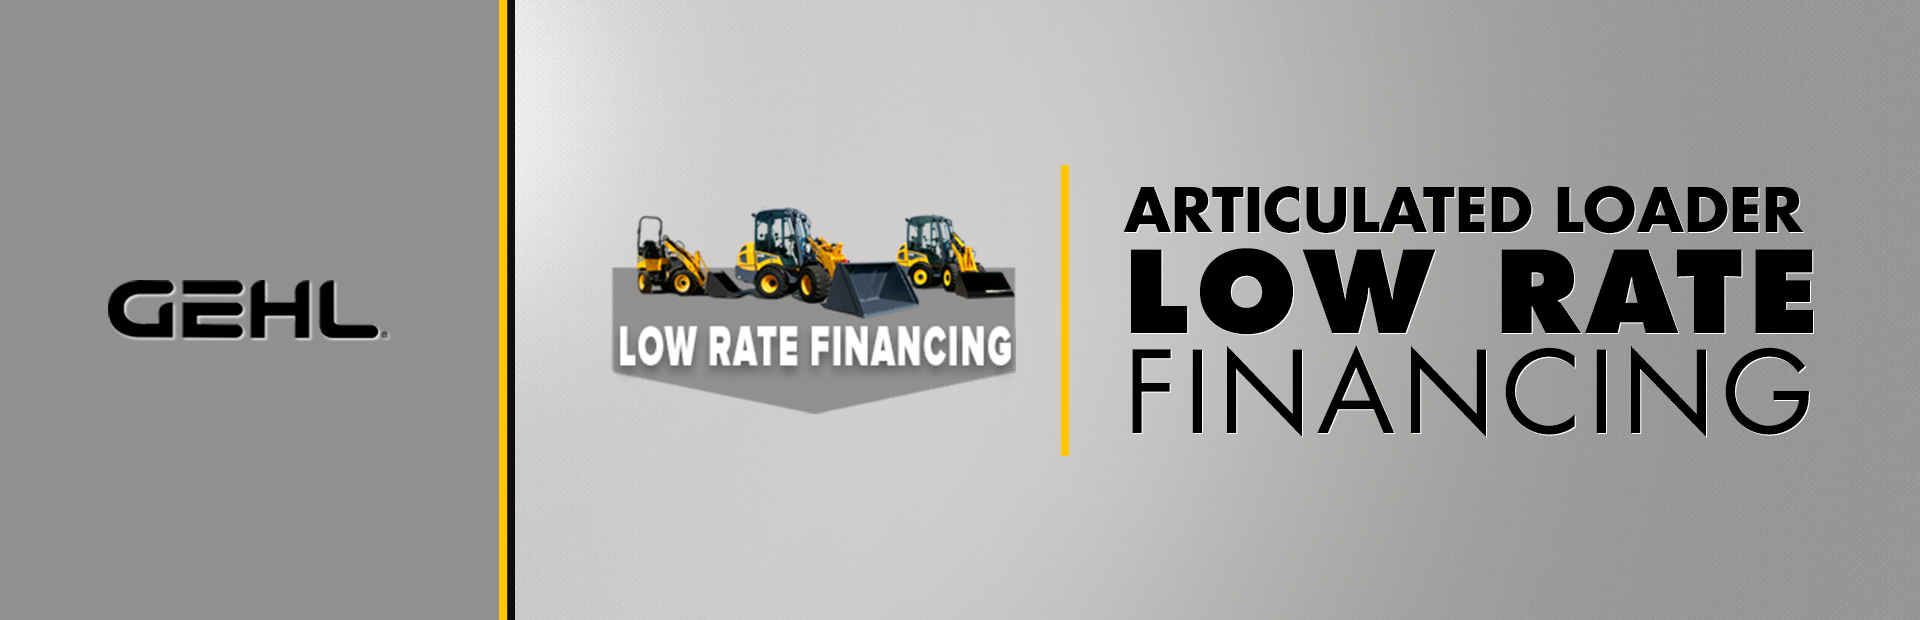 Gehl: Articulated Loader - Low Rate Financing